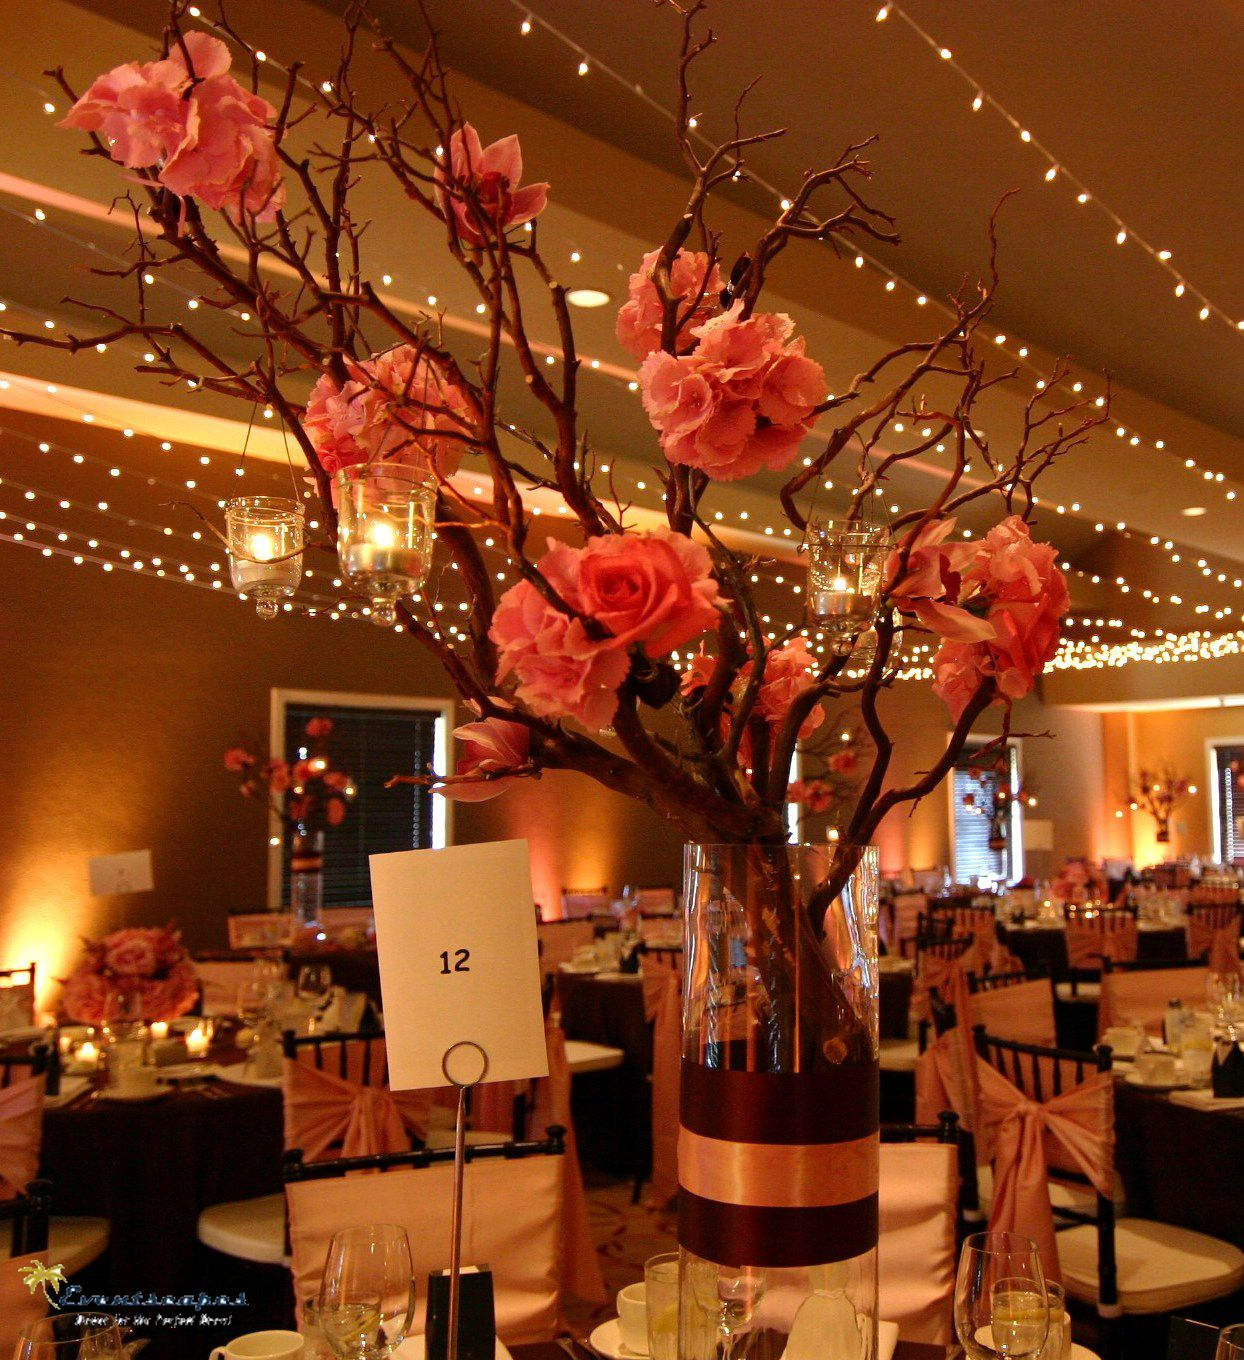 Fall Wedding Decoration Ideas On A Budget: Orange Wedding Centerpiece Ideas